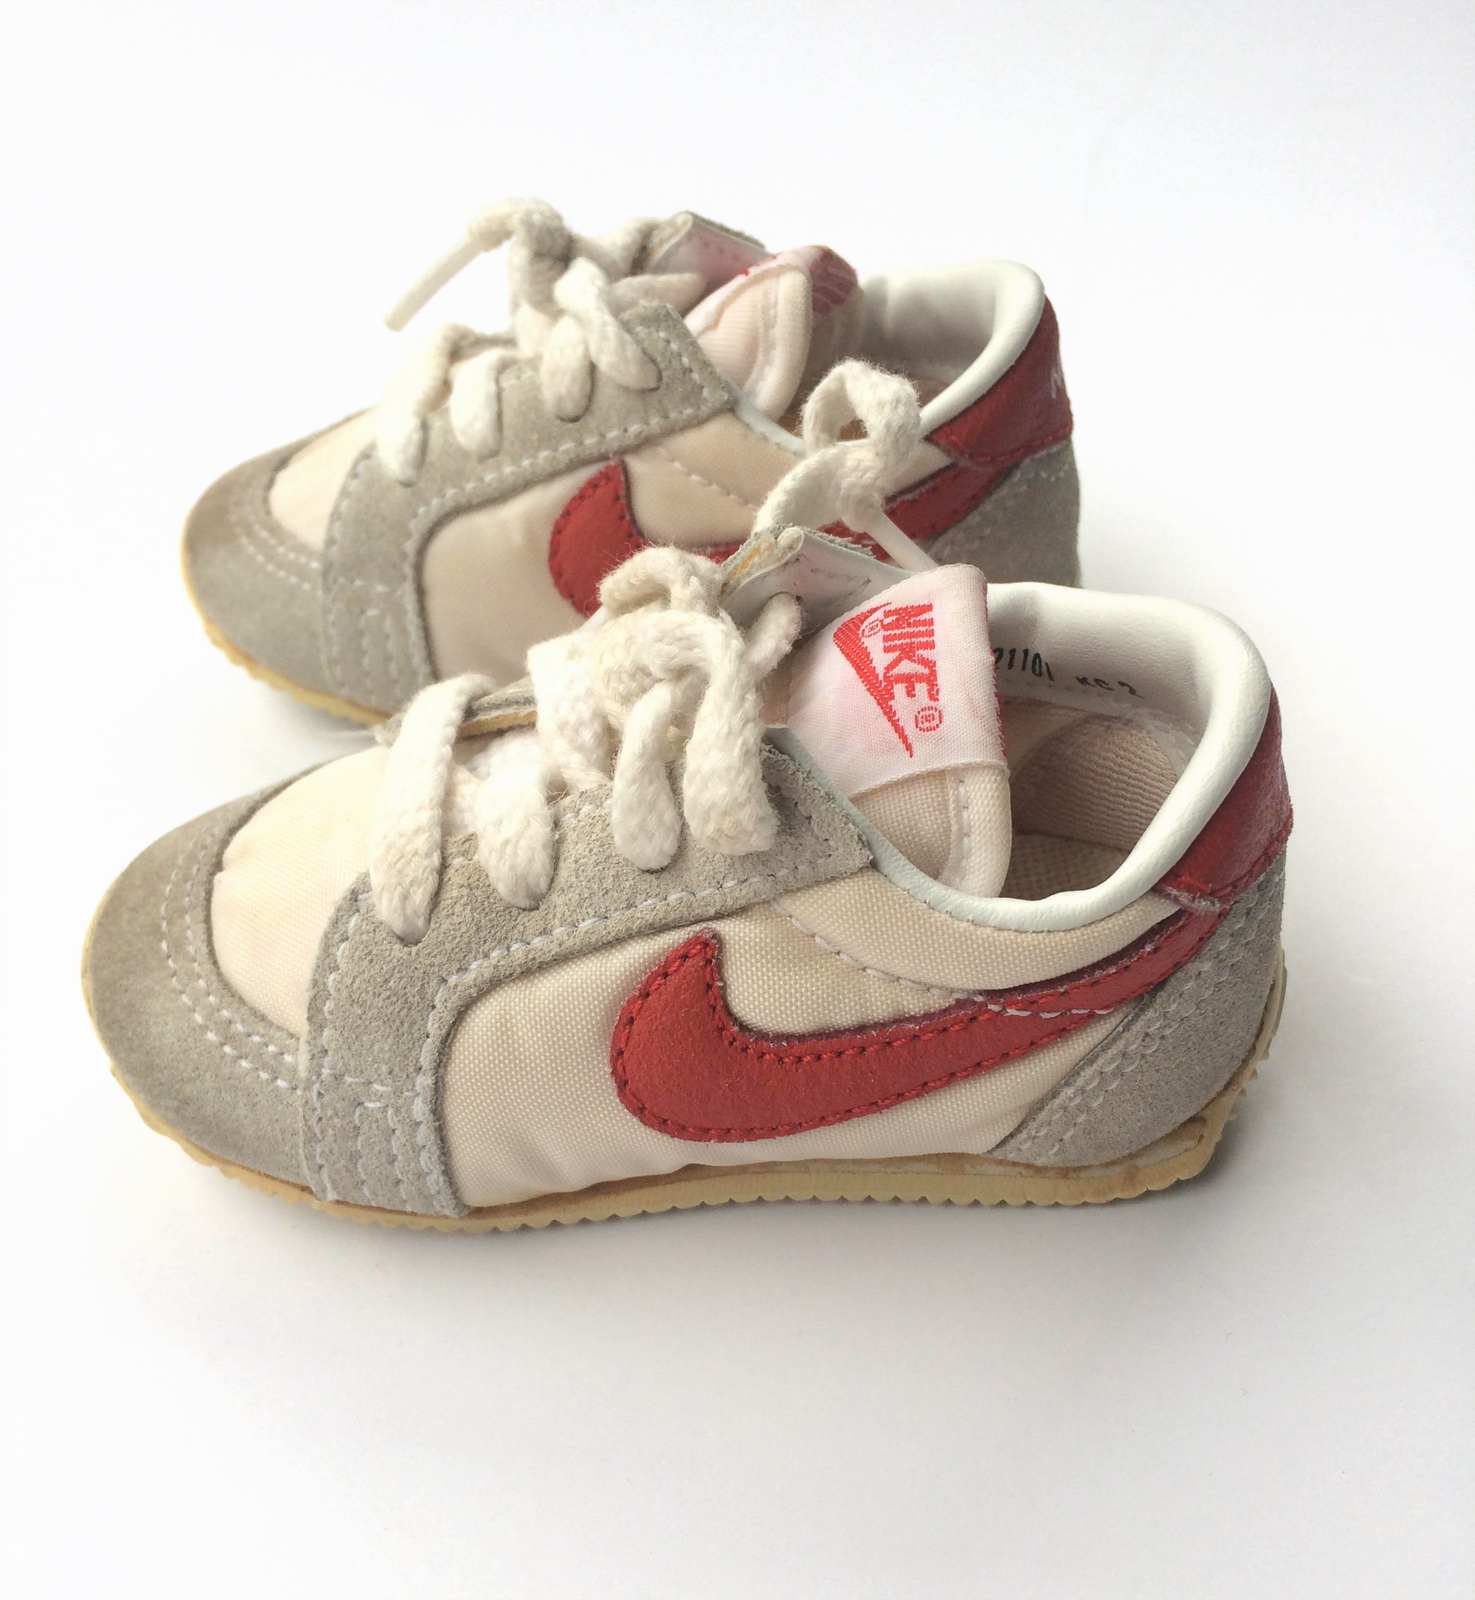 Vintage 1980 Nike baby toddler shoes size 2 PLAY kids clothes